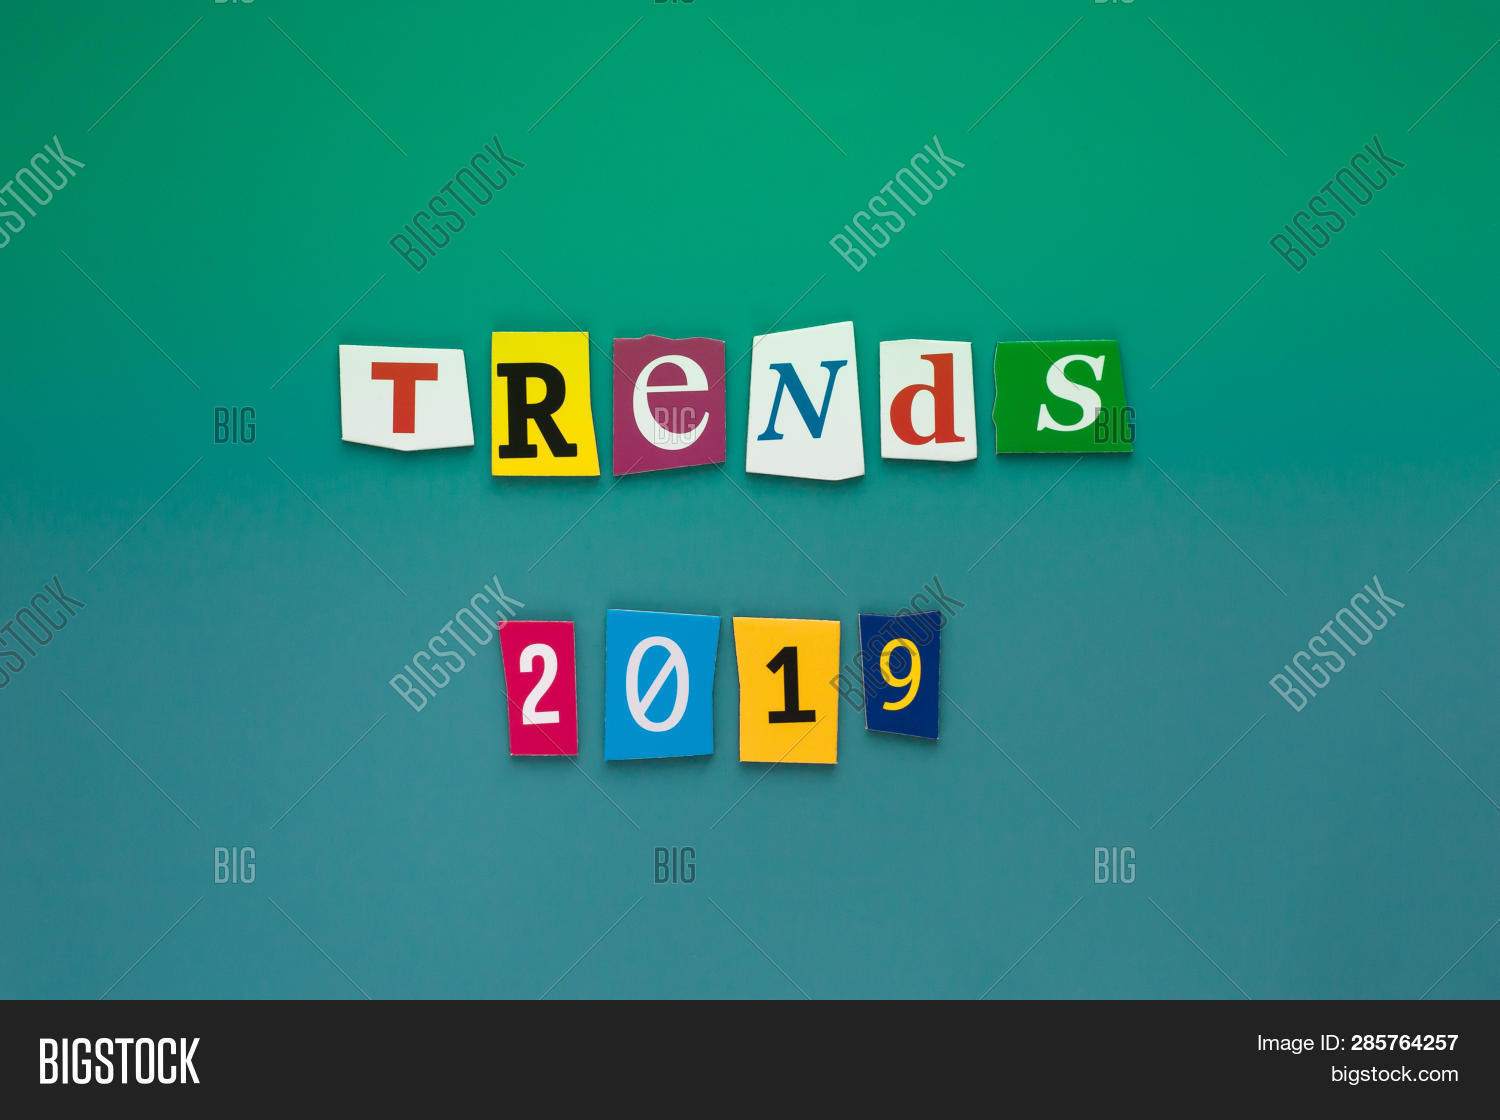 2019,abstract,alphabet,background,beauty,block,blue,box,business,card,color,colored,colorful,concept,design,funny,green,group,icon,illustration,inscription,isolated,letters,lifestyle,media,message,mix,modern,mood,multicolored,paper,pattern,red,sign,social,space,success,symbol,text,top,trends,trendy,view,white,word